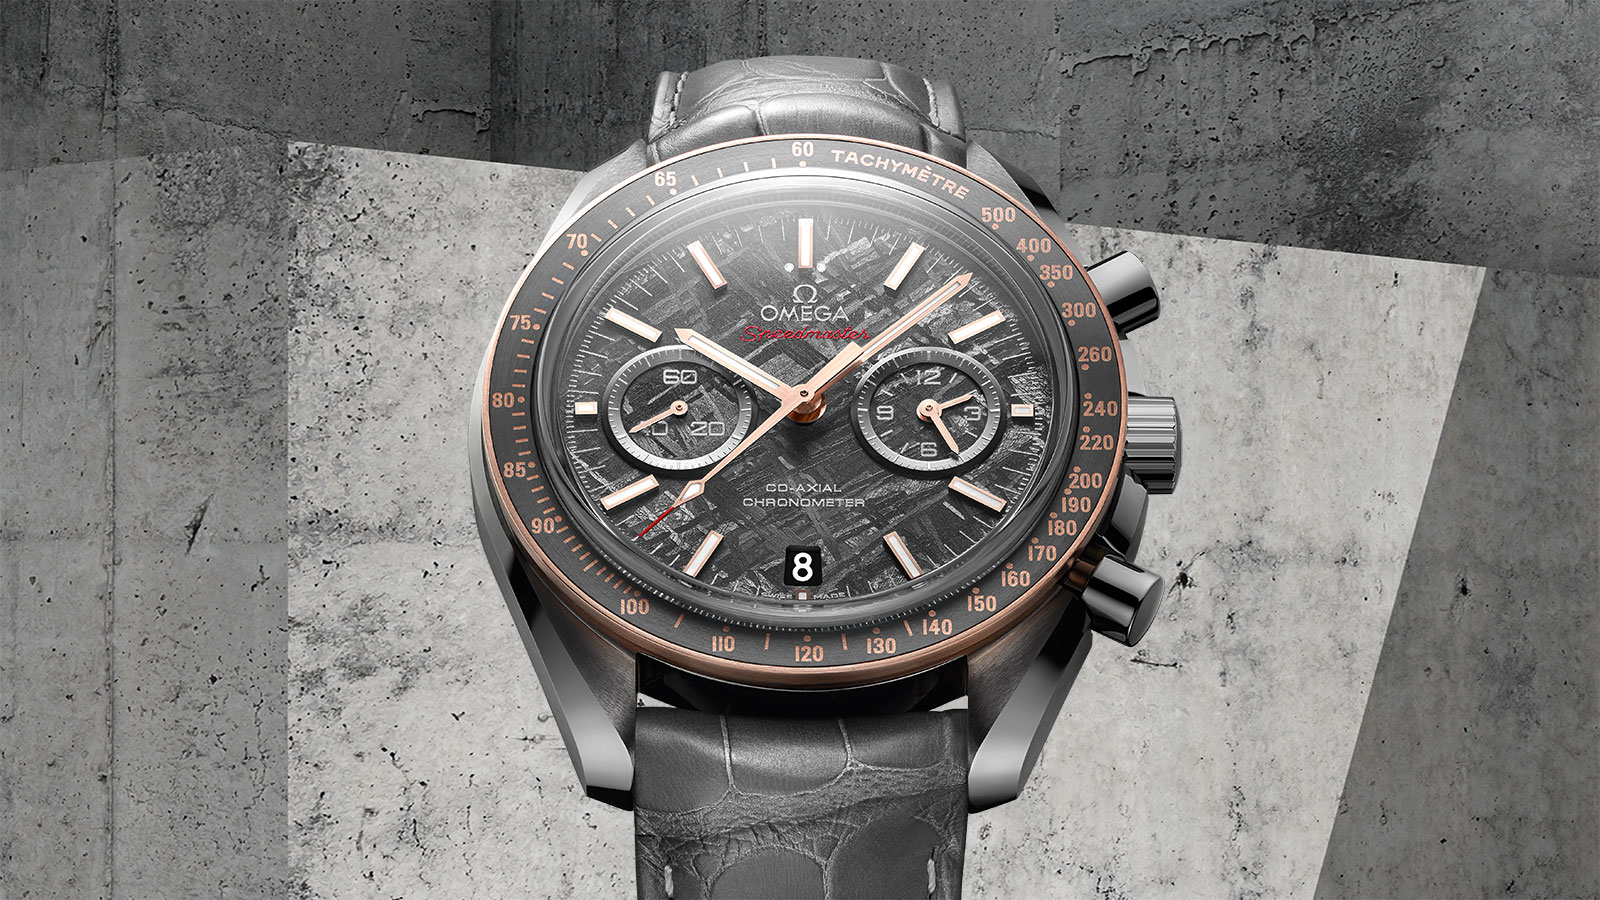 Speedmaster Moonwatch Moonwatch Omega Co‑Axial Chronograph 44,25 mm Reloj - 311.63.44.51.99.001